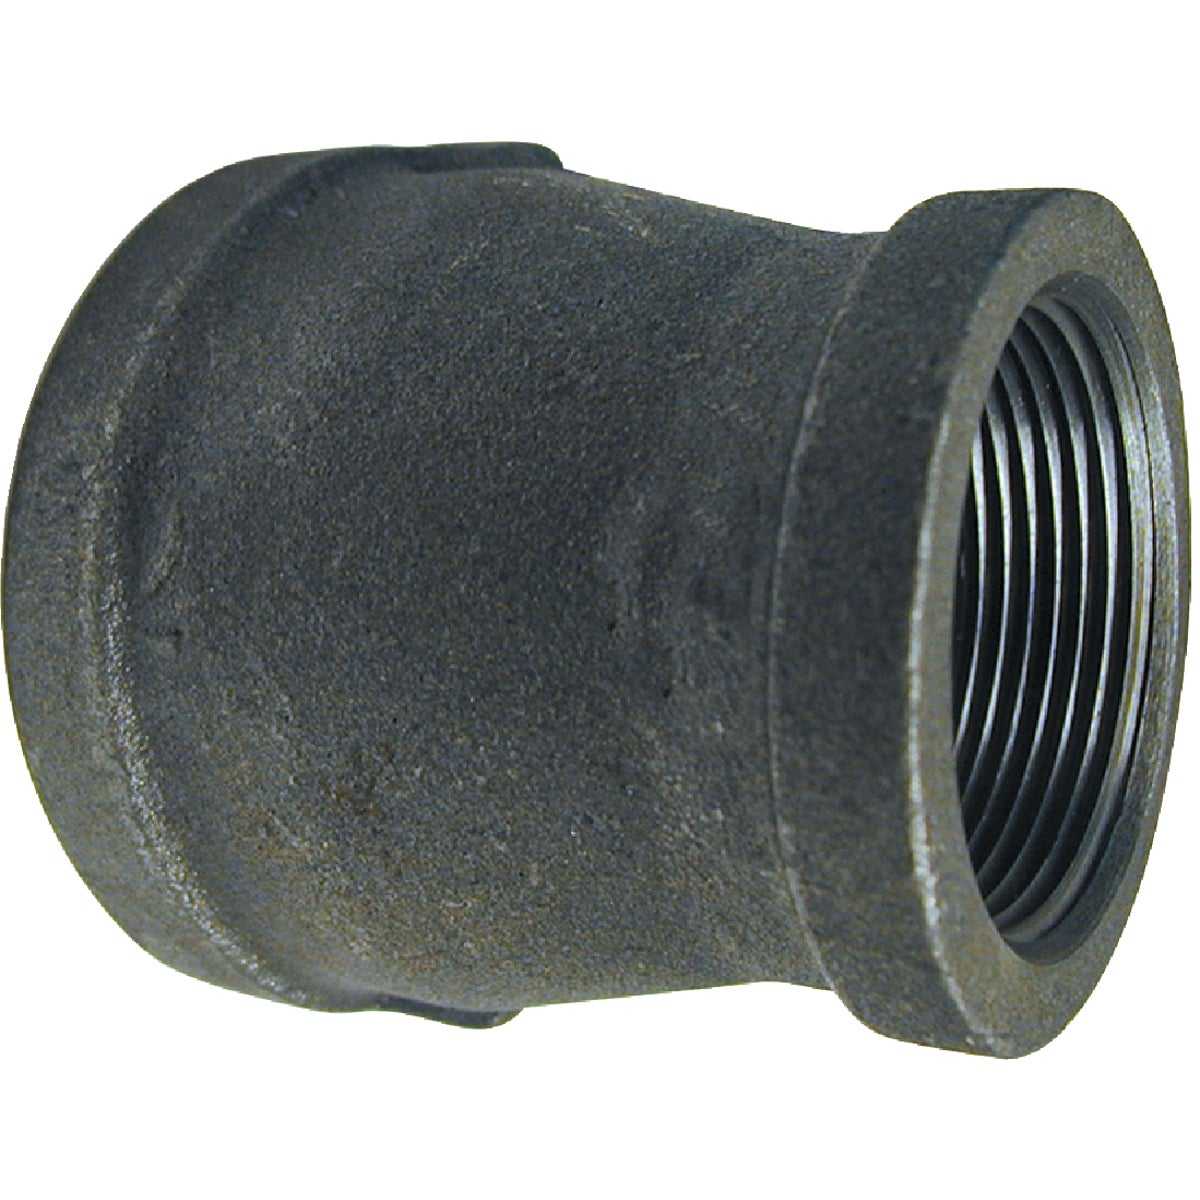 3/8X1/8 BLACK COUPLING - 521-320BG by Mueller B K